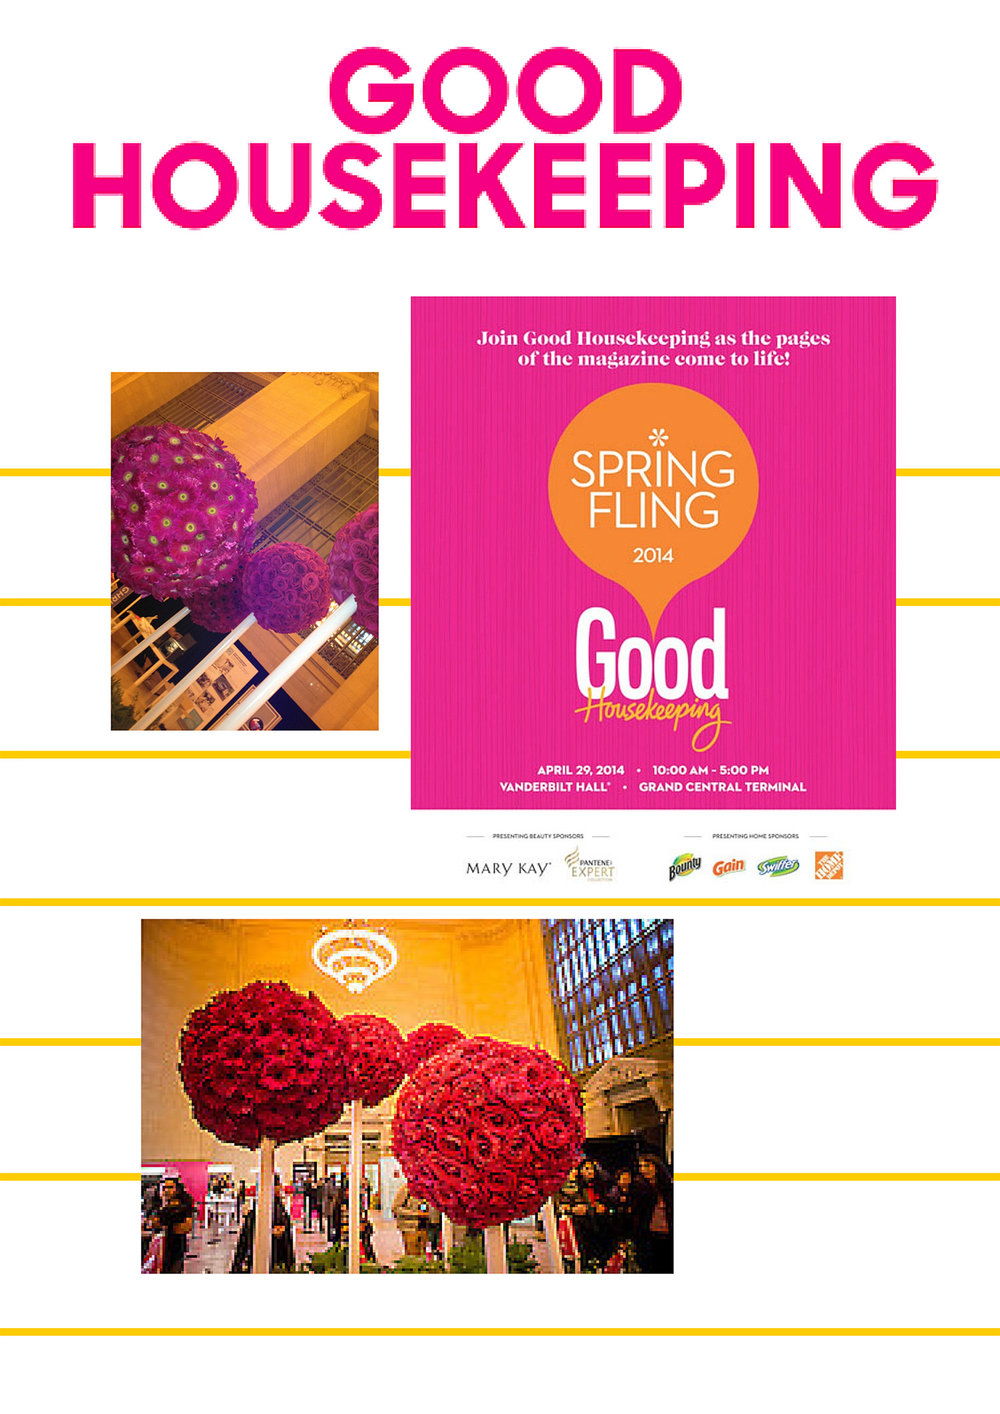 Good-Housekeeping-Press.jpg